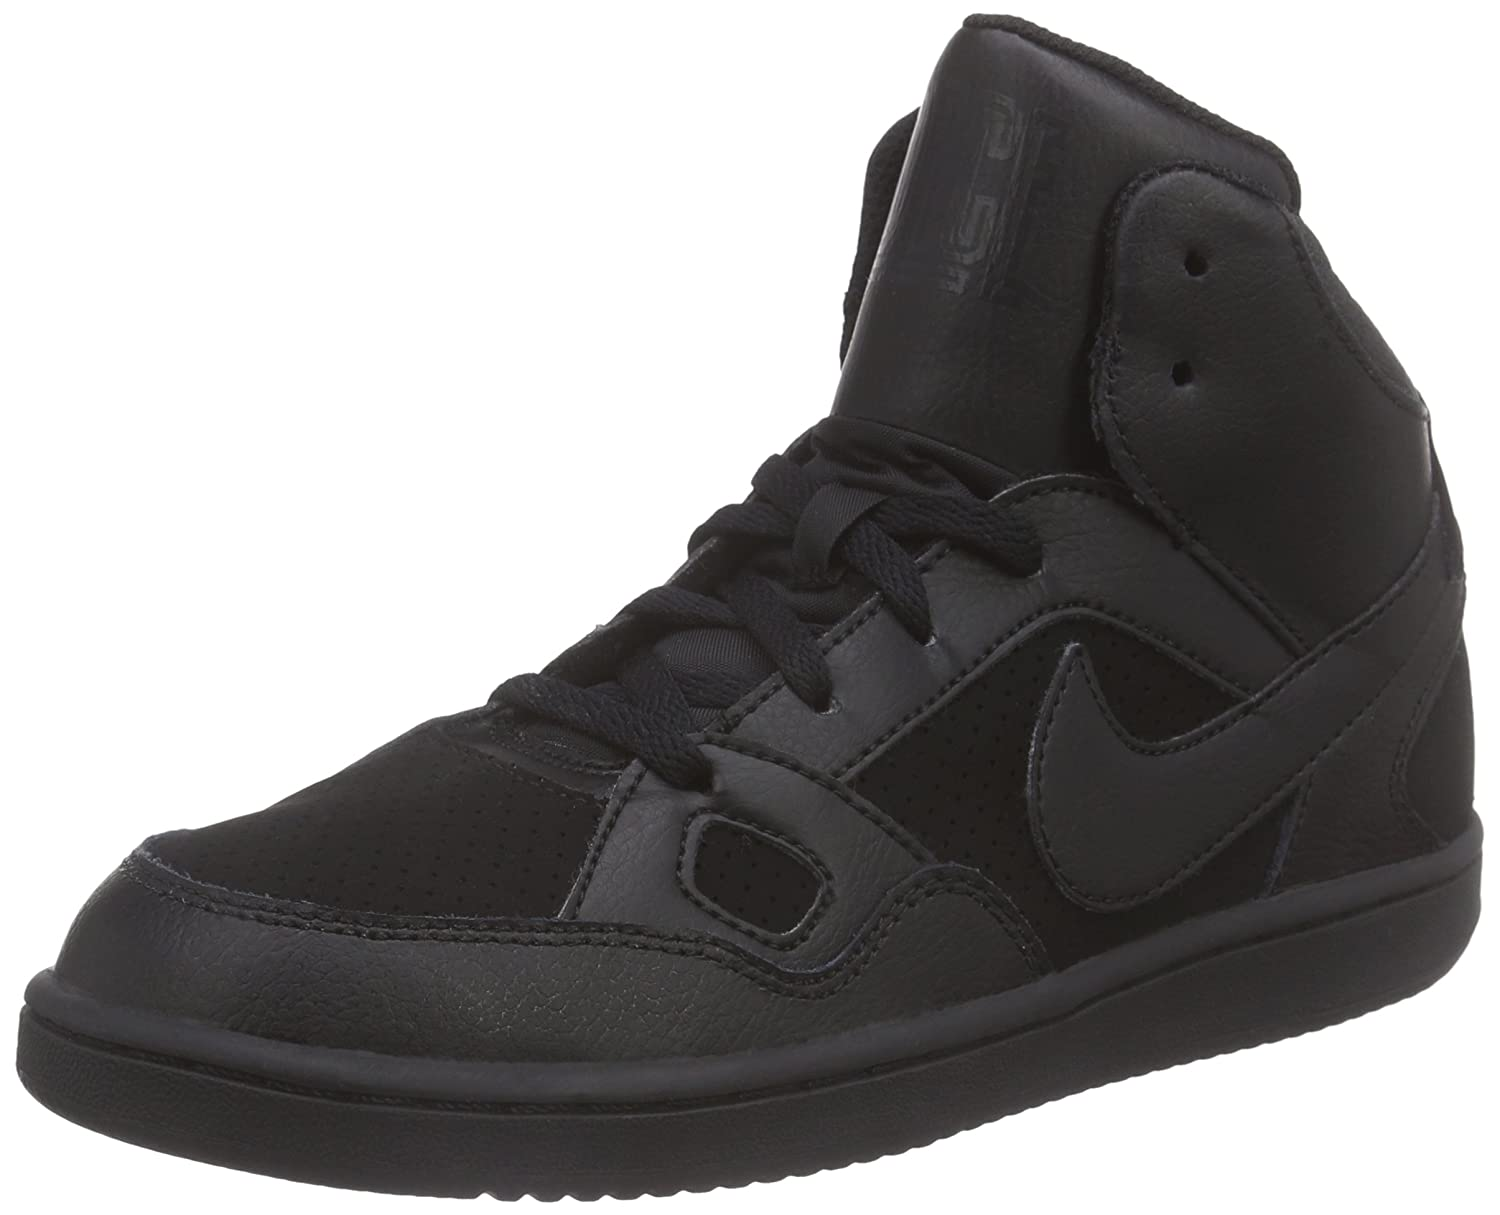 #615161-021 NIKE Son of Force MID PS